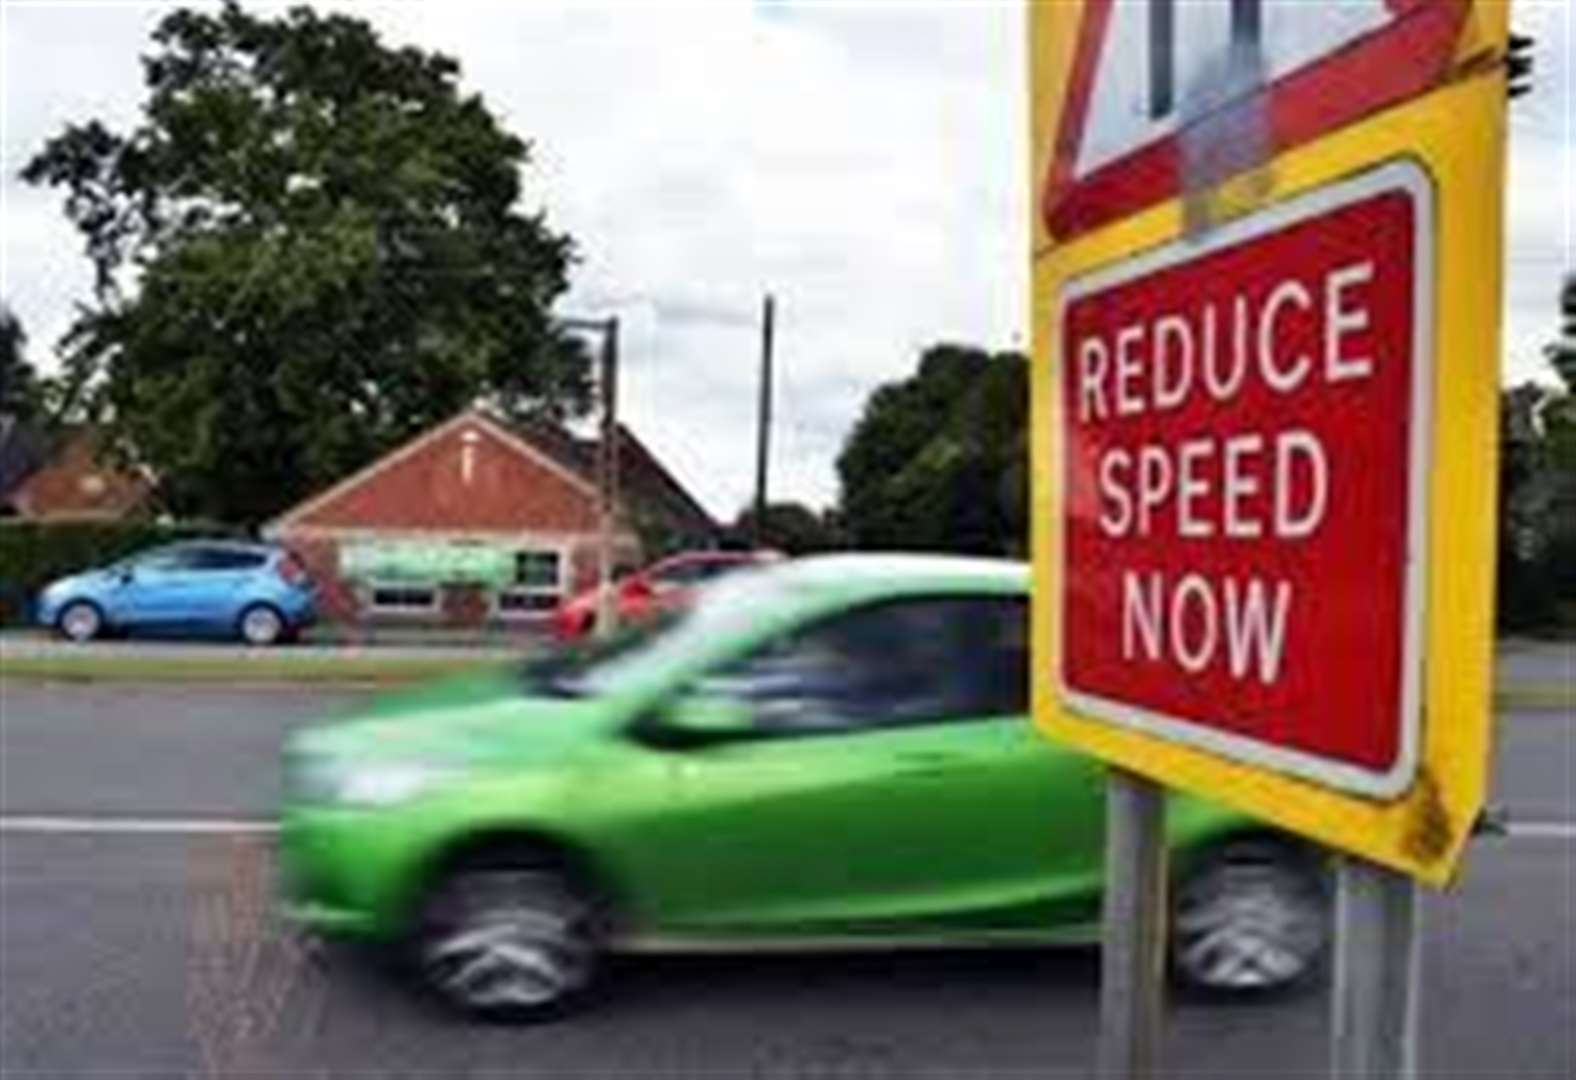 Report A1073 speeders to police, pleads road safety meeting host